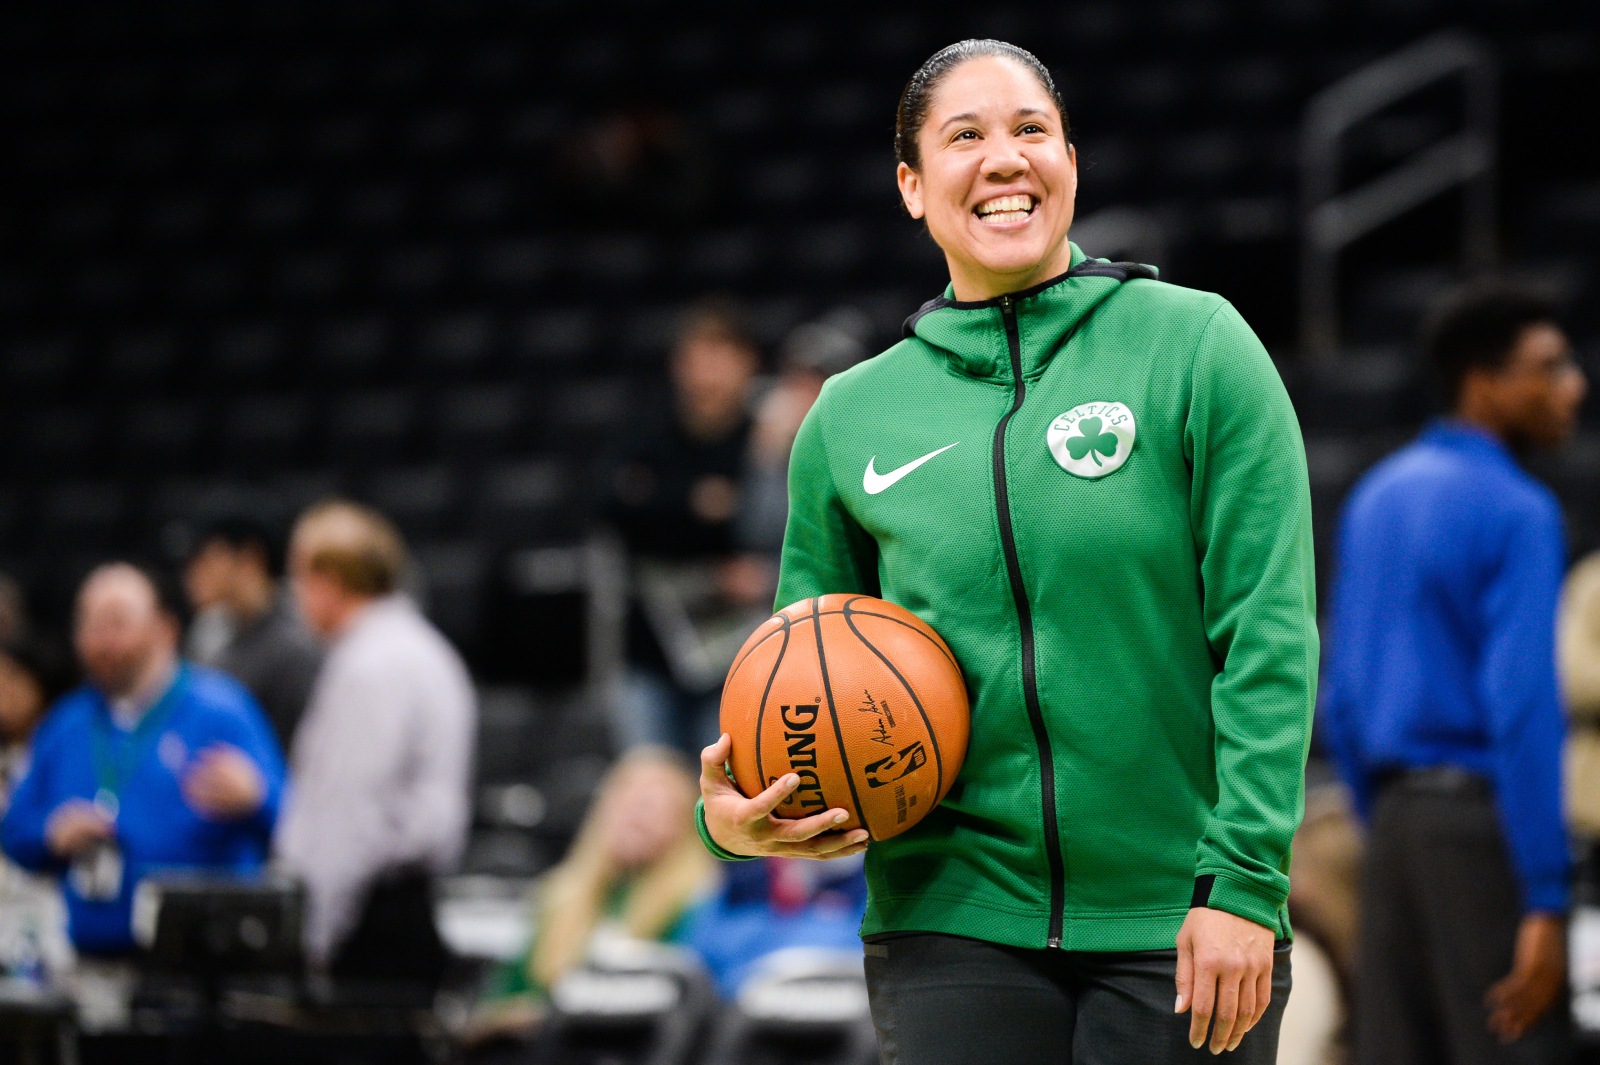 Kara Lawson has been in the news recently after Duke hired her to coach its women's basketball team. Who exactly is she?